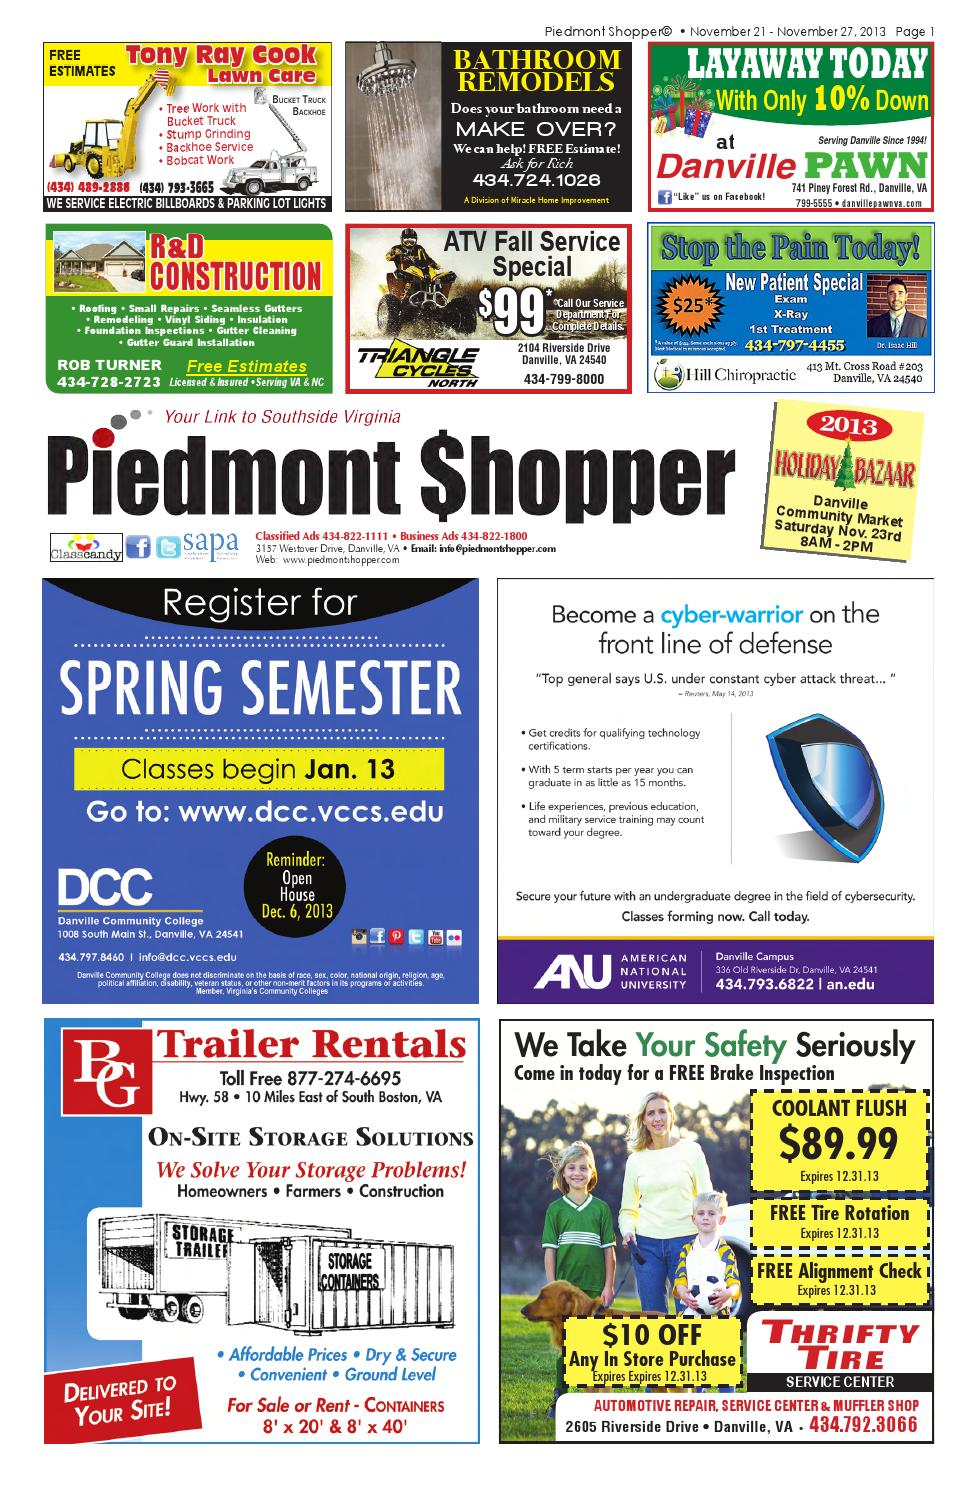 Piedmont Shopper 11 21 13 by piedmont shopper - issuu